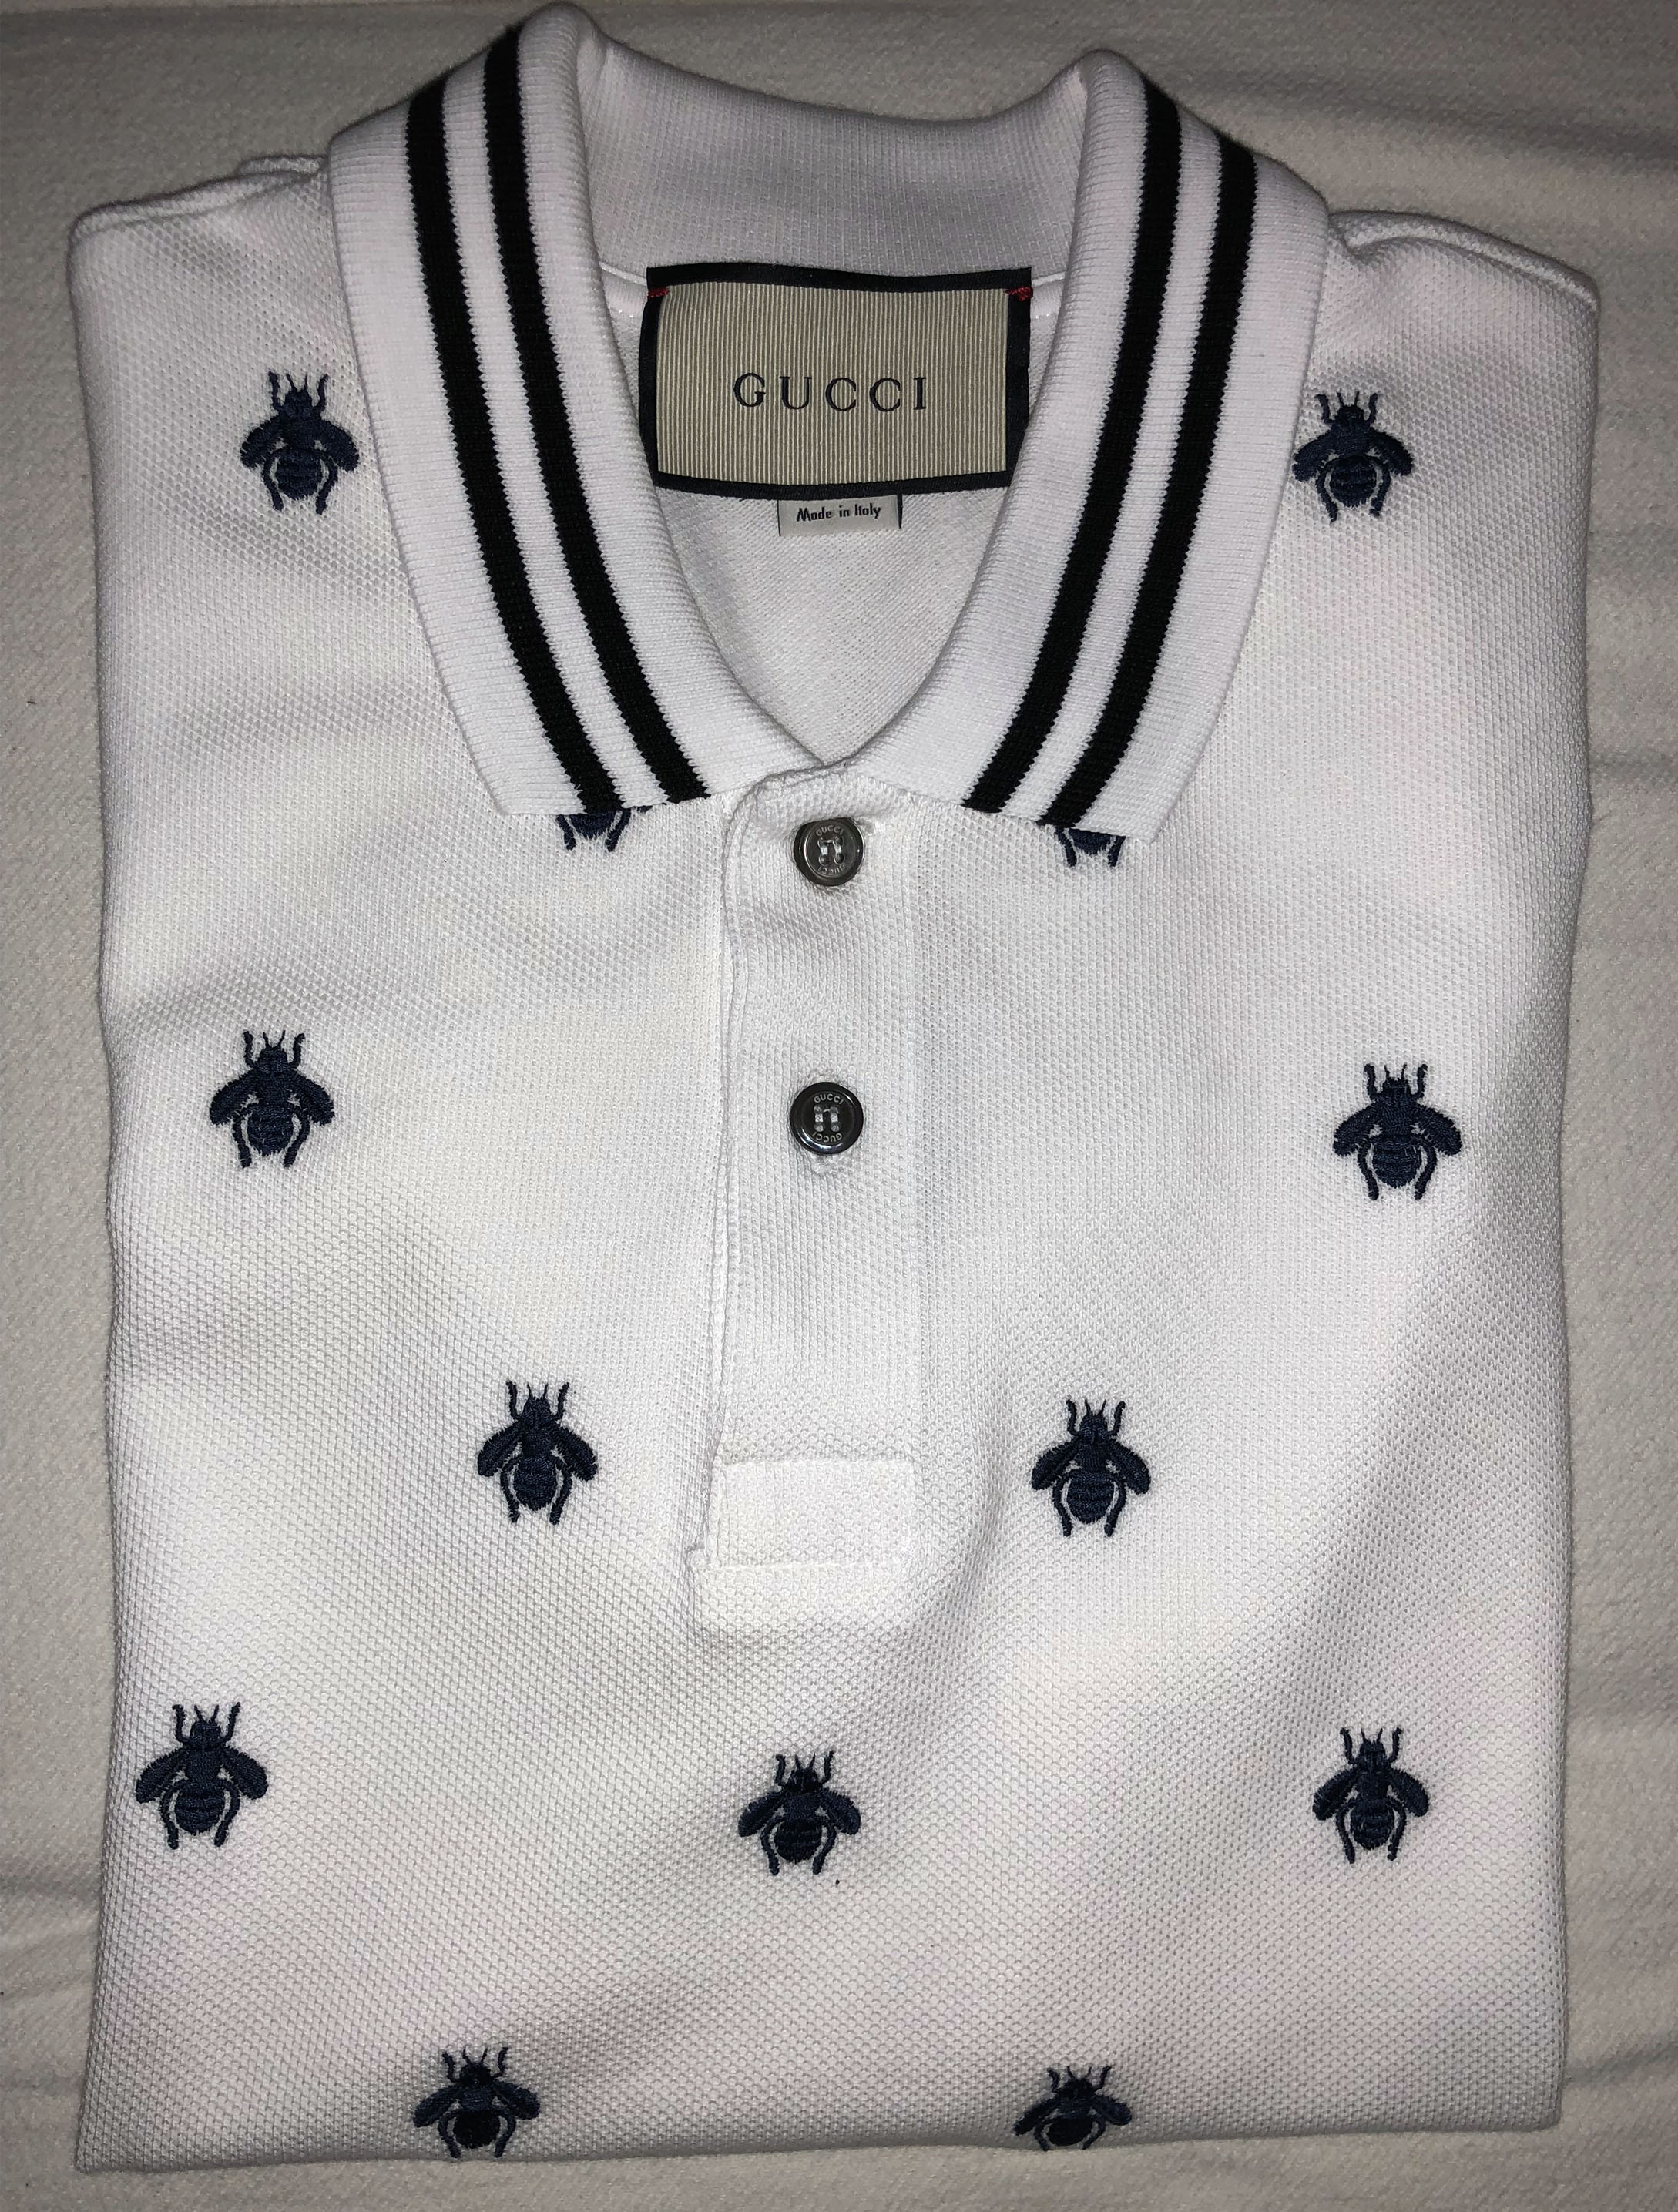 edfd1414 Gucci Gucci cotton polo with bees and stars Size s - Polos for Sale -  Grailed